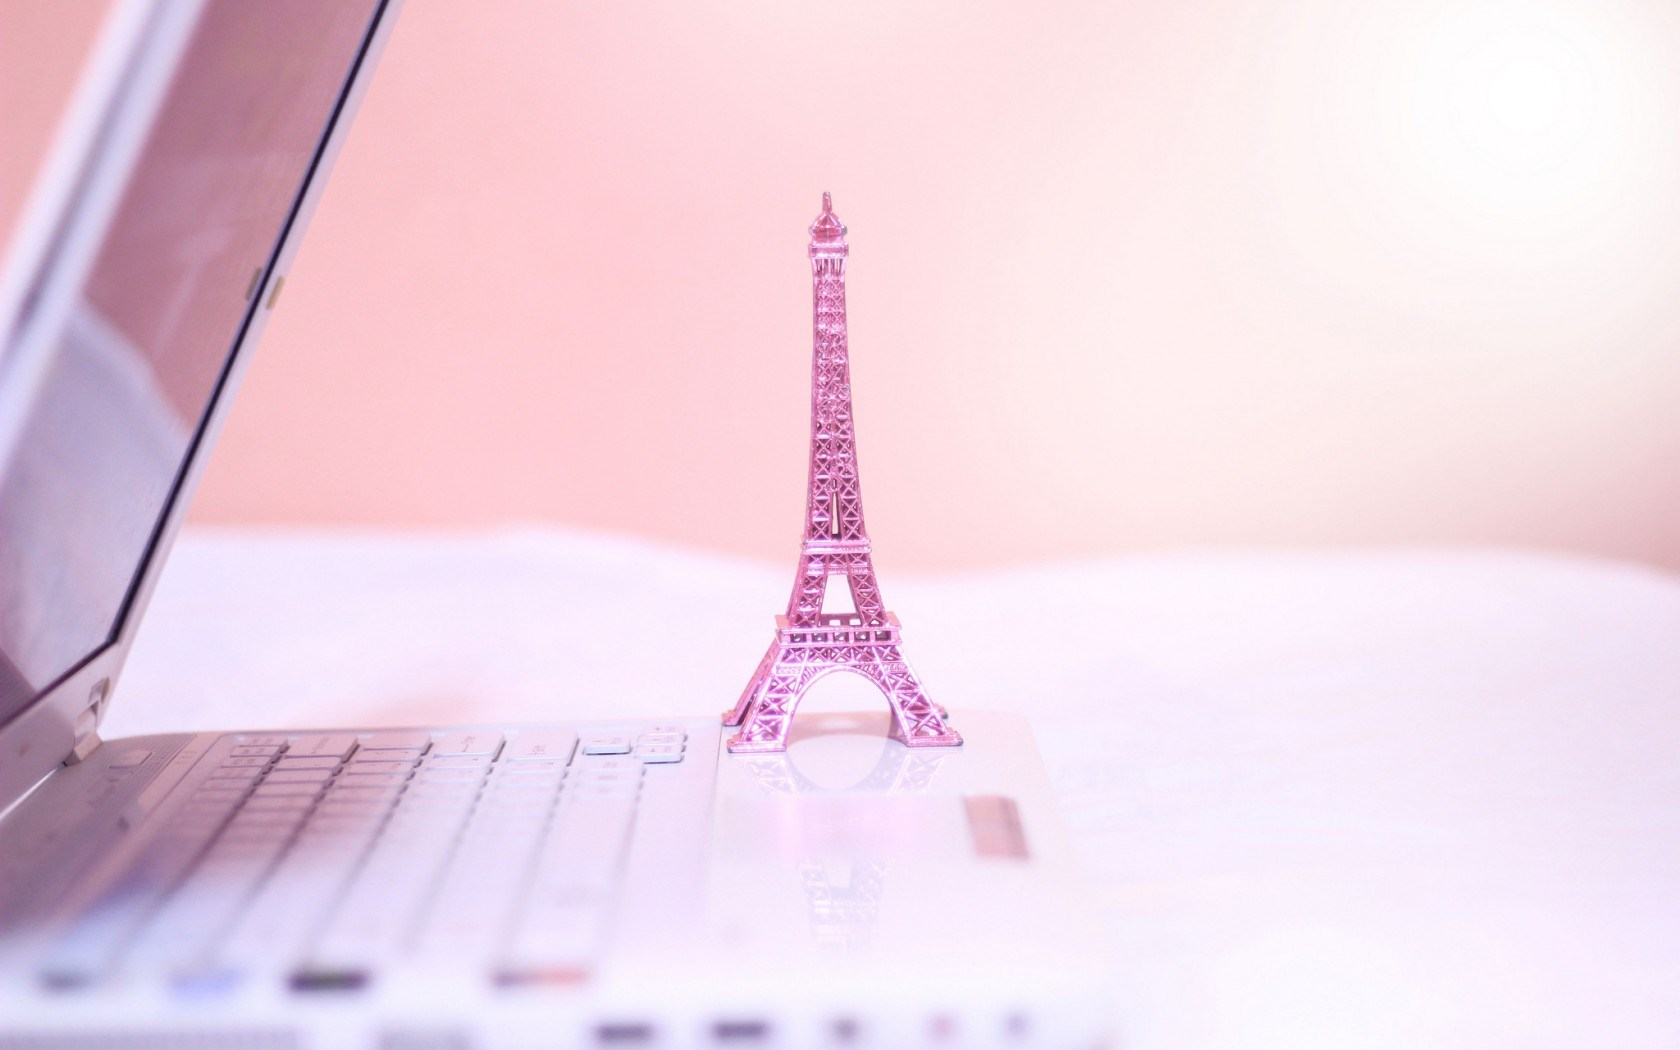 The Eiffel Tower Statue Pink Notebook